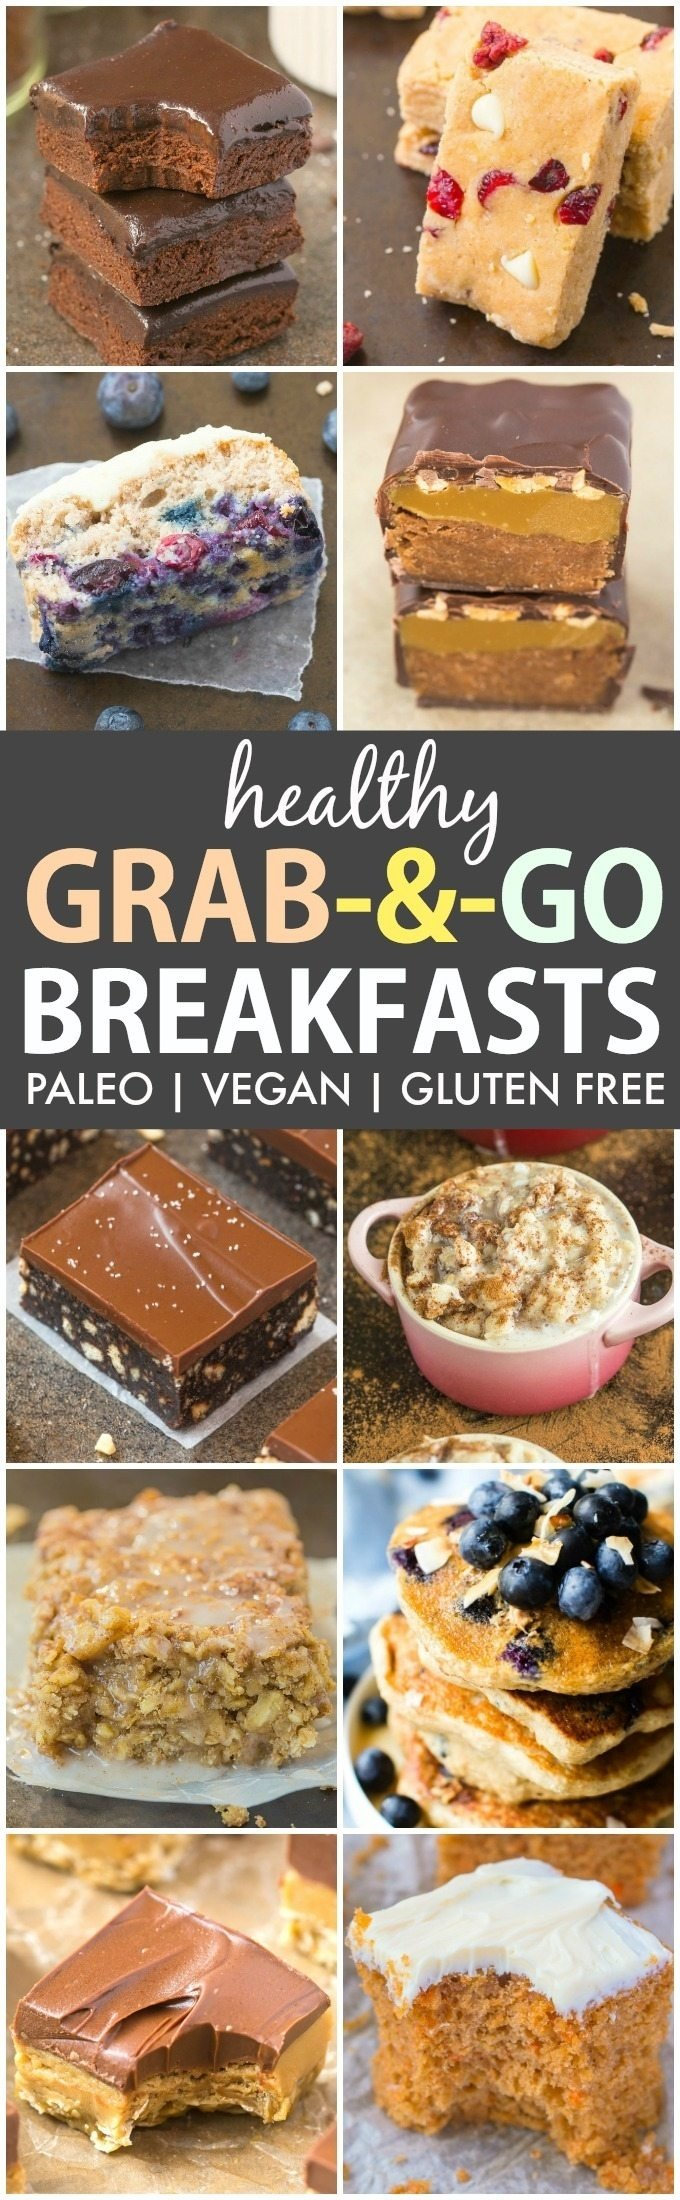 10 Attractive Grab And Go Breakfast Ideas 25 easy and healthy grab and go breakfast ideas paleo vegan 1 2021